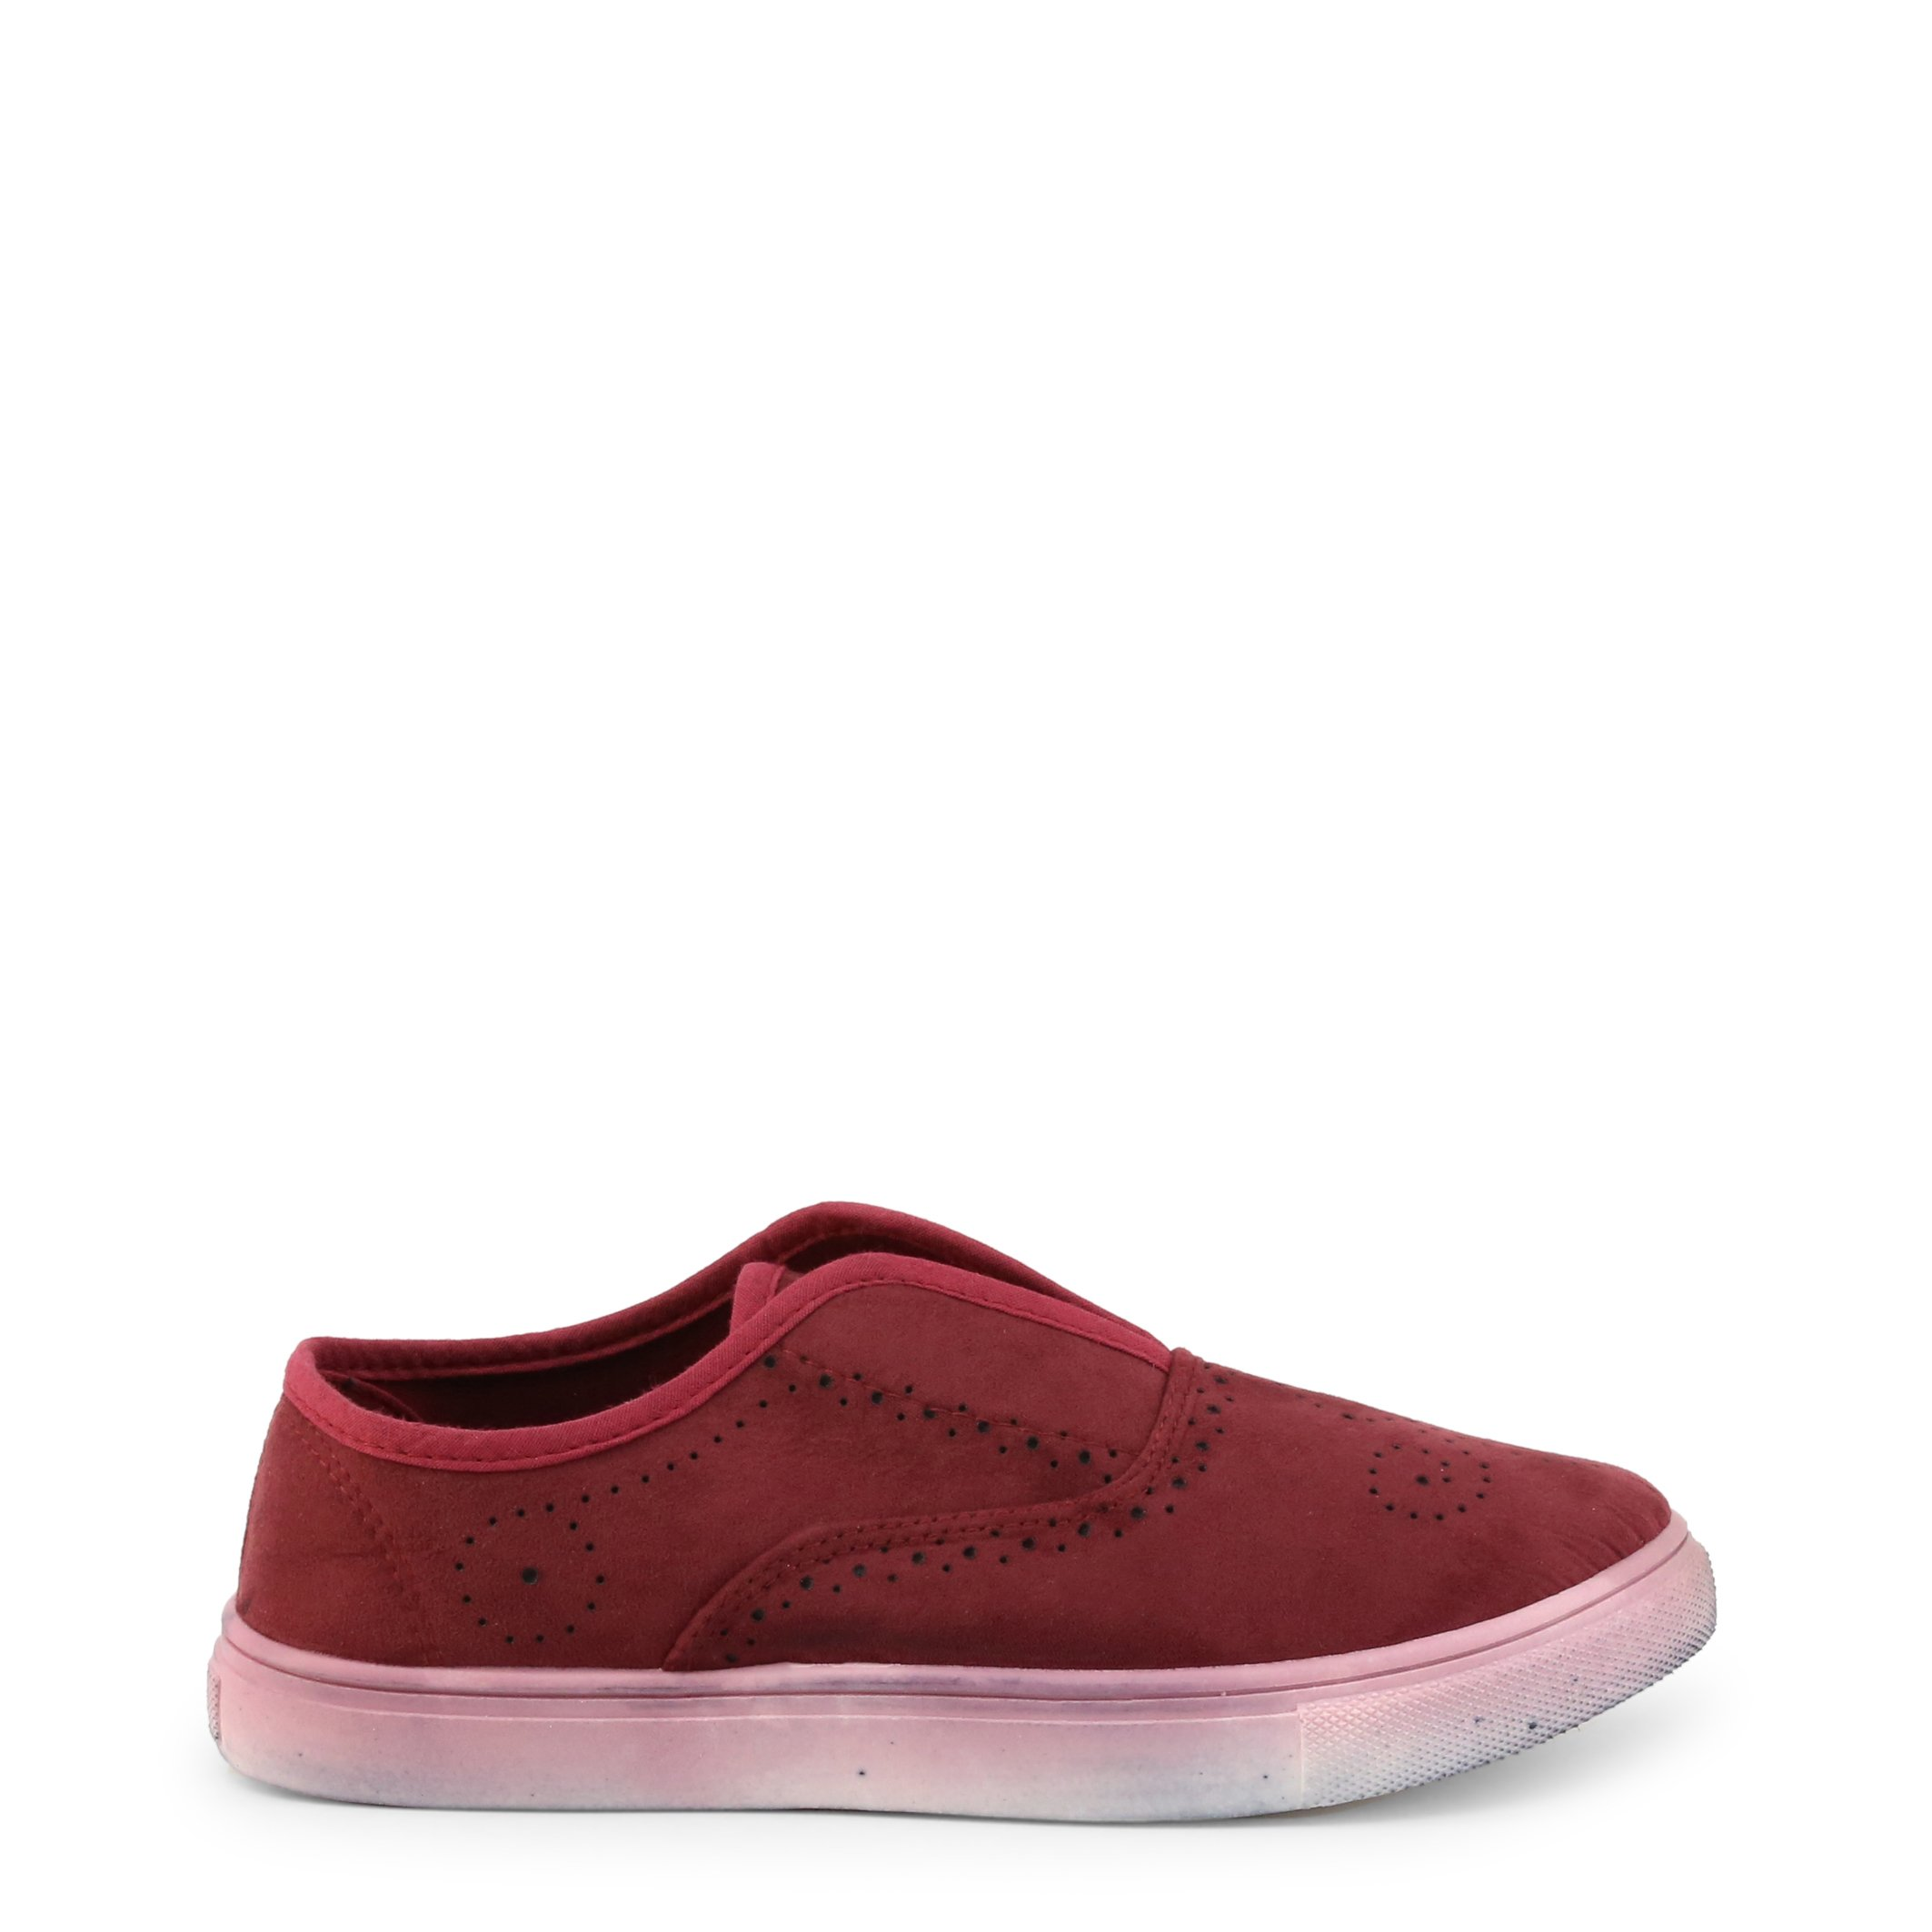 Roccobarocco Women's Slip On Trainer Various Colours RBSC1J801 - red EU 39